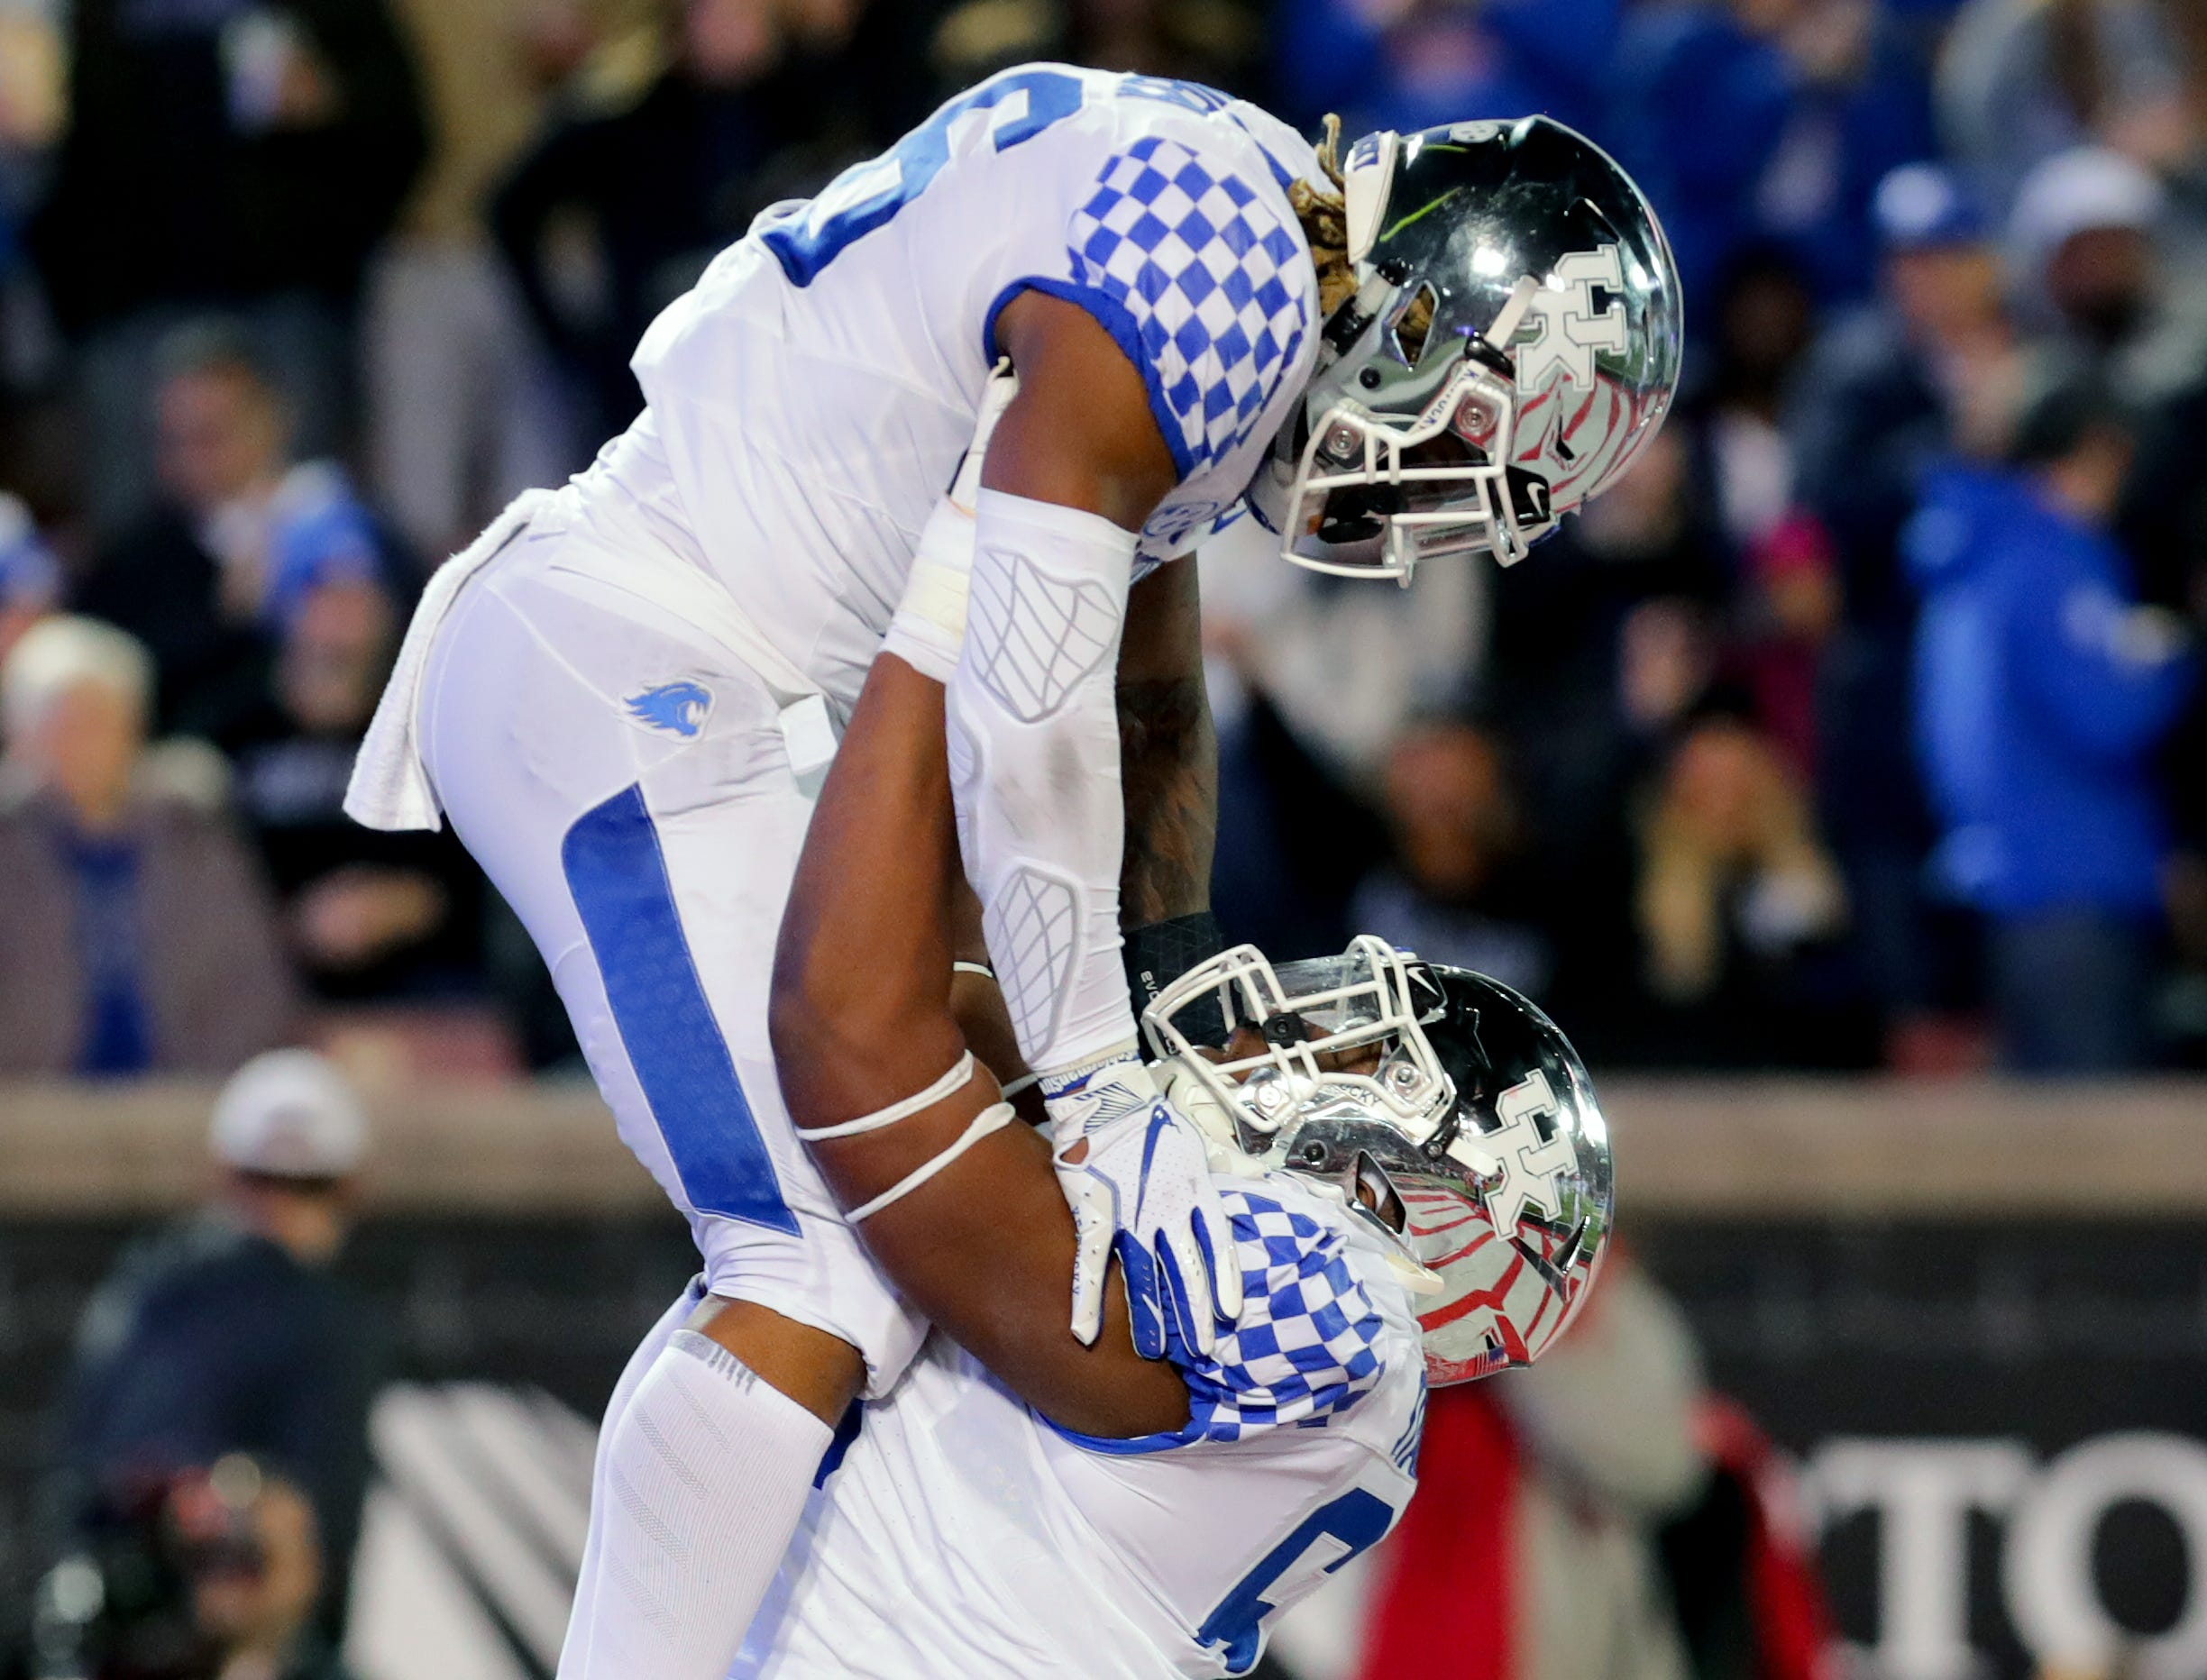 Kentucky's Sam Turner lifts Benny Snell Jr. up in the air after Snell scored a touchdown. Nov. 24, 2018